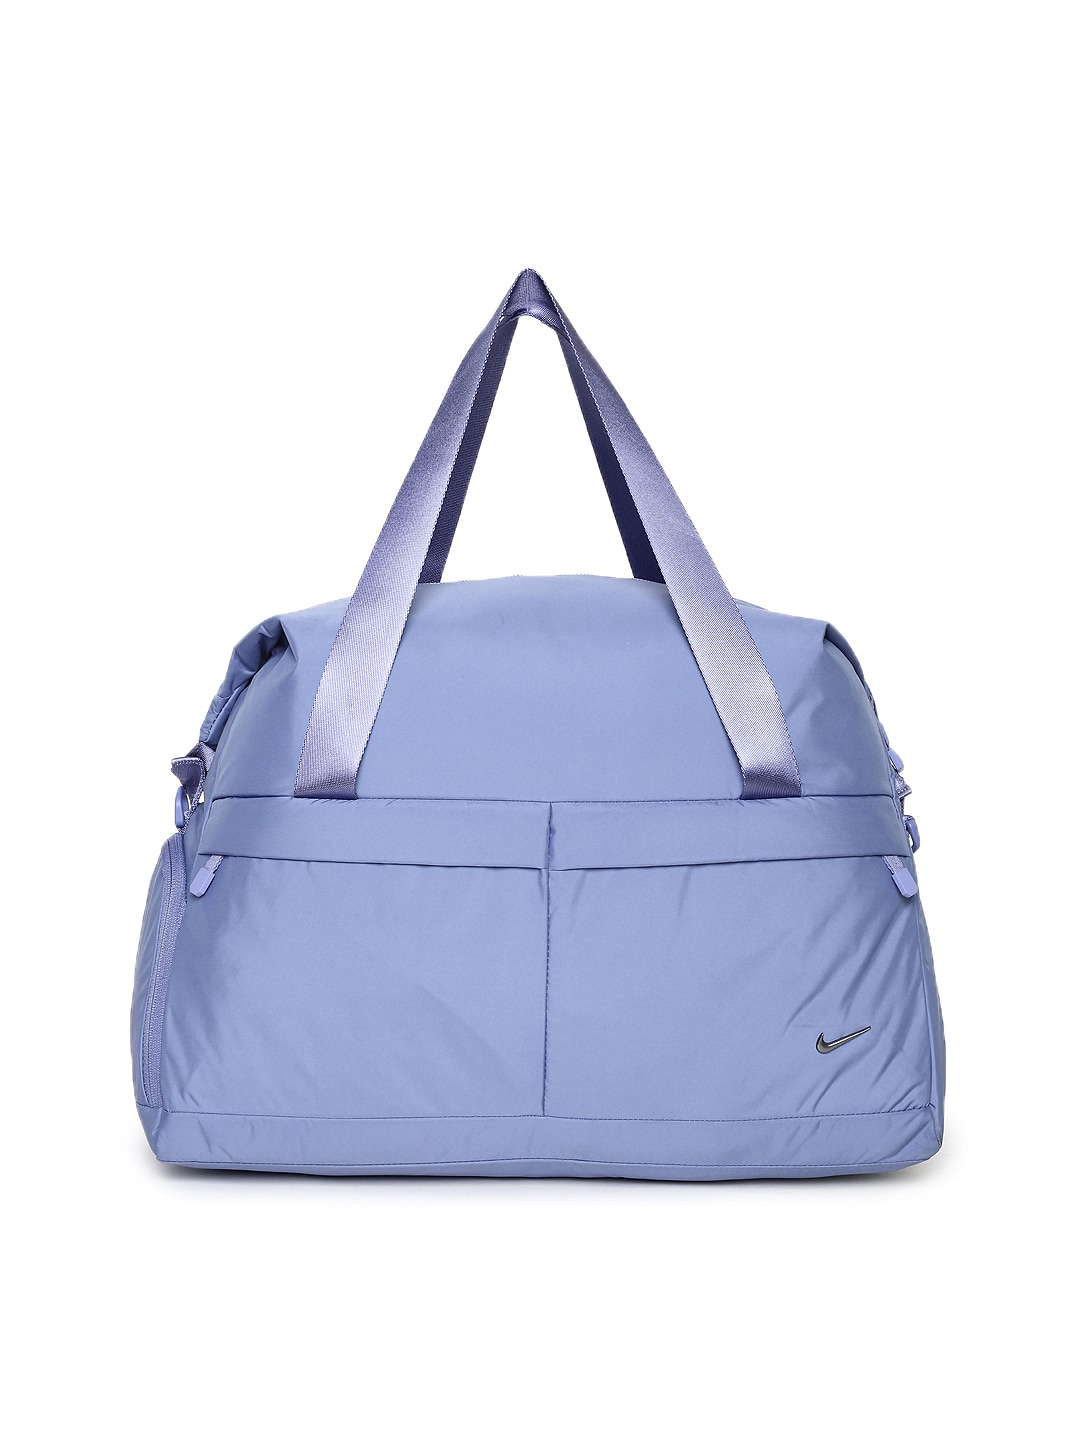 Adidas Nike Bags - Buy Adidas Nike Bags online in India 13f280a16ef